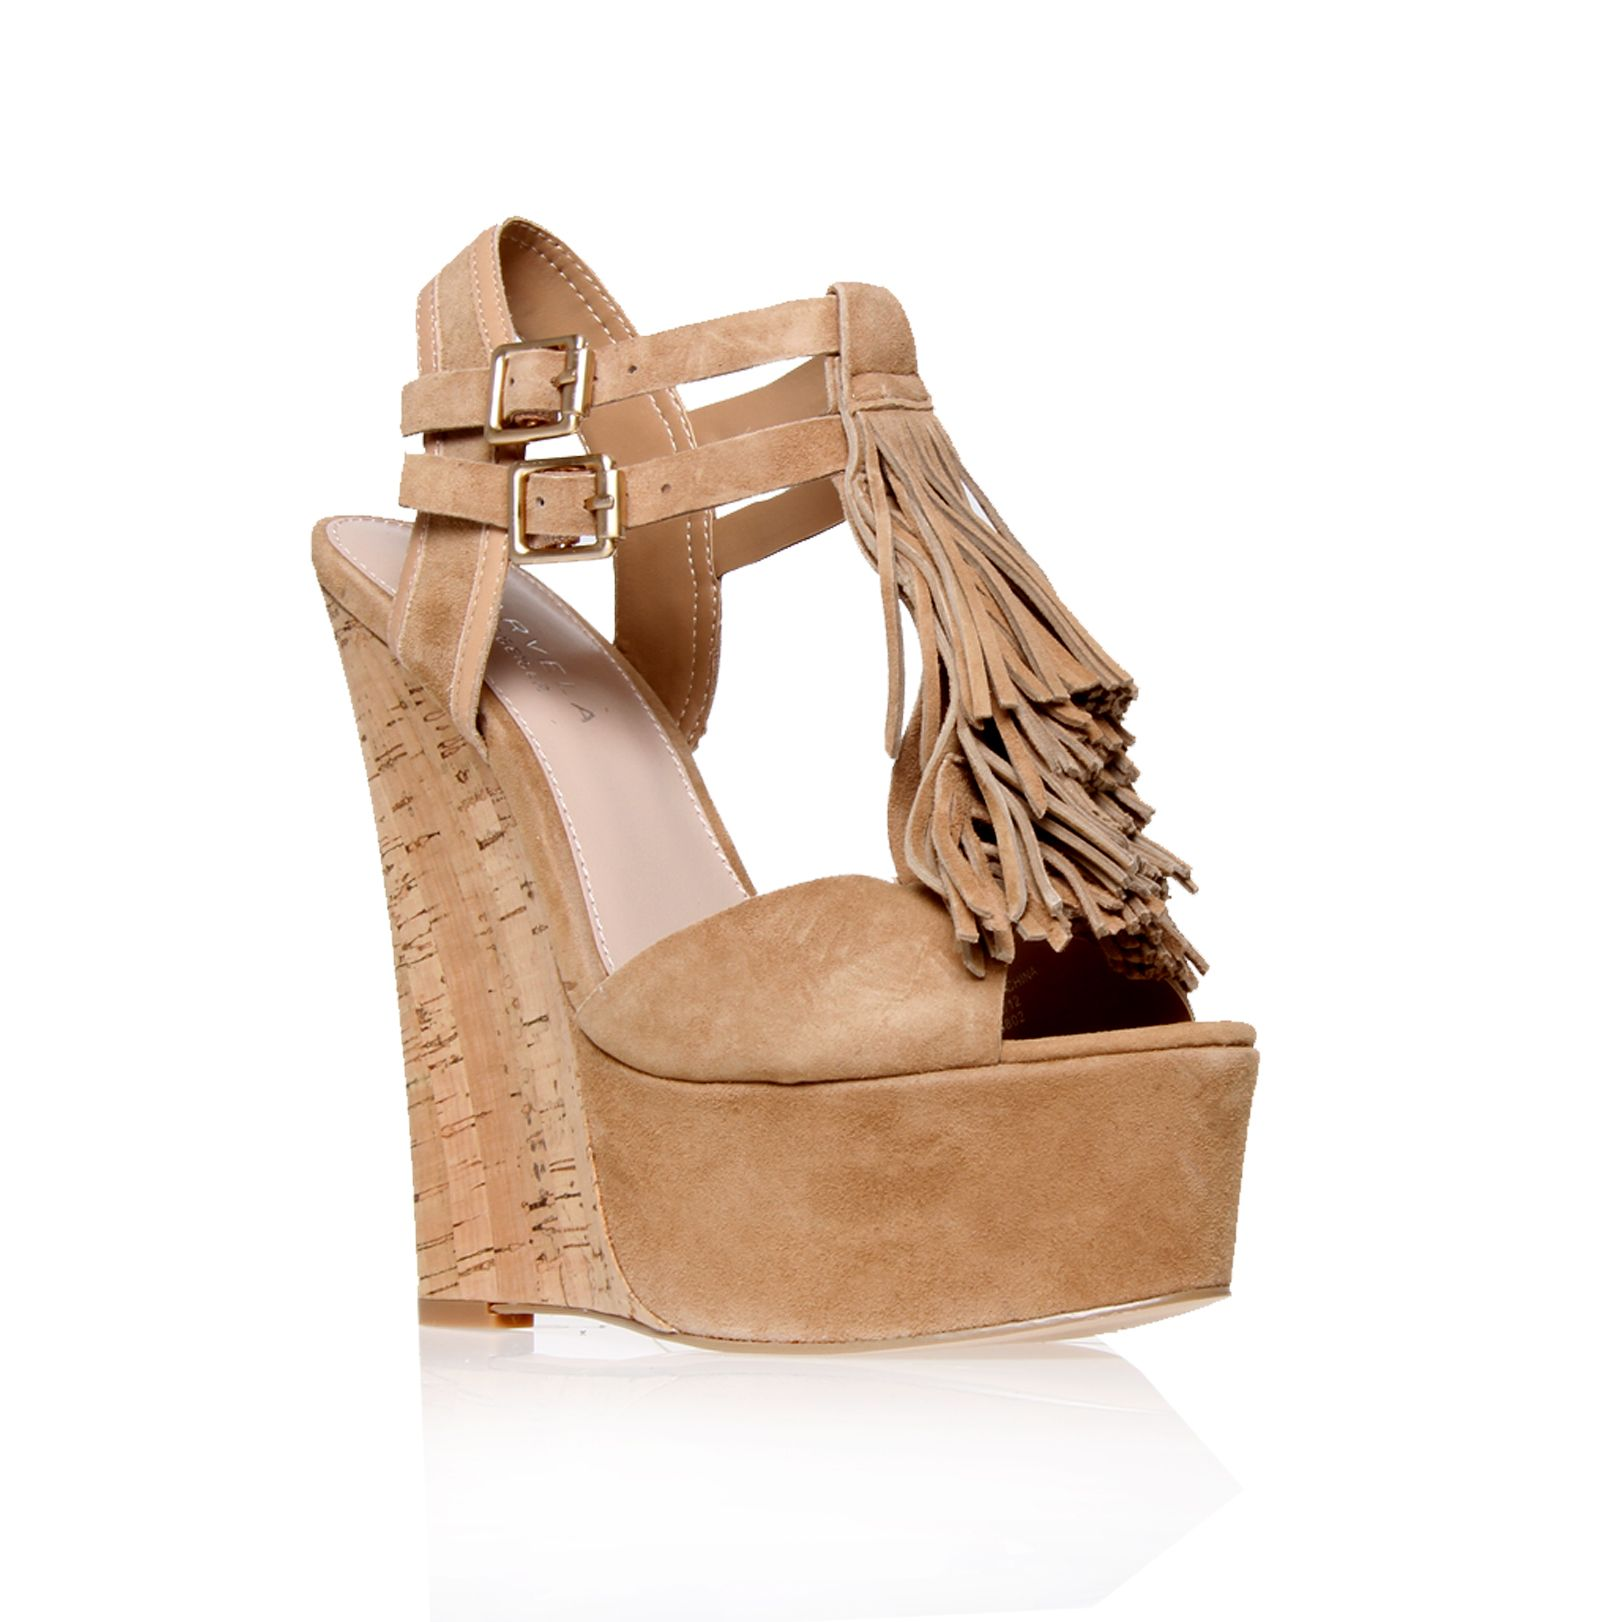 Kola suede wedge sandals